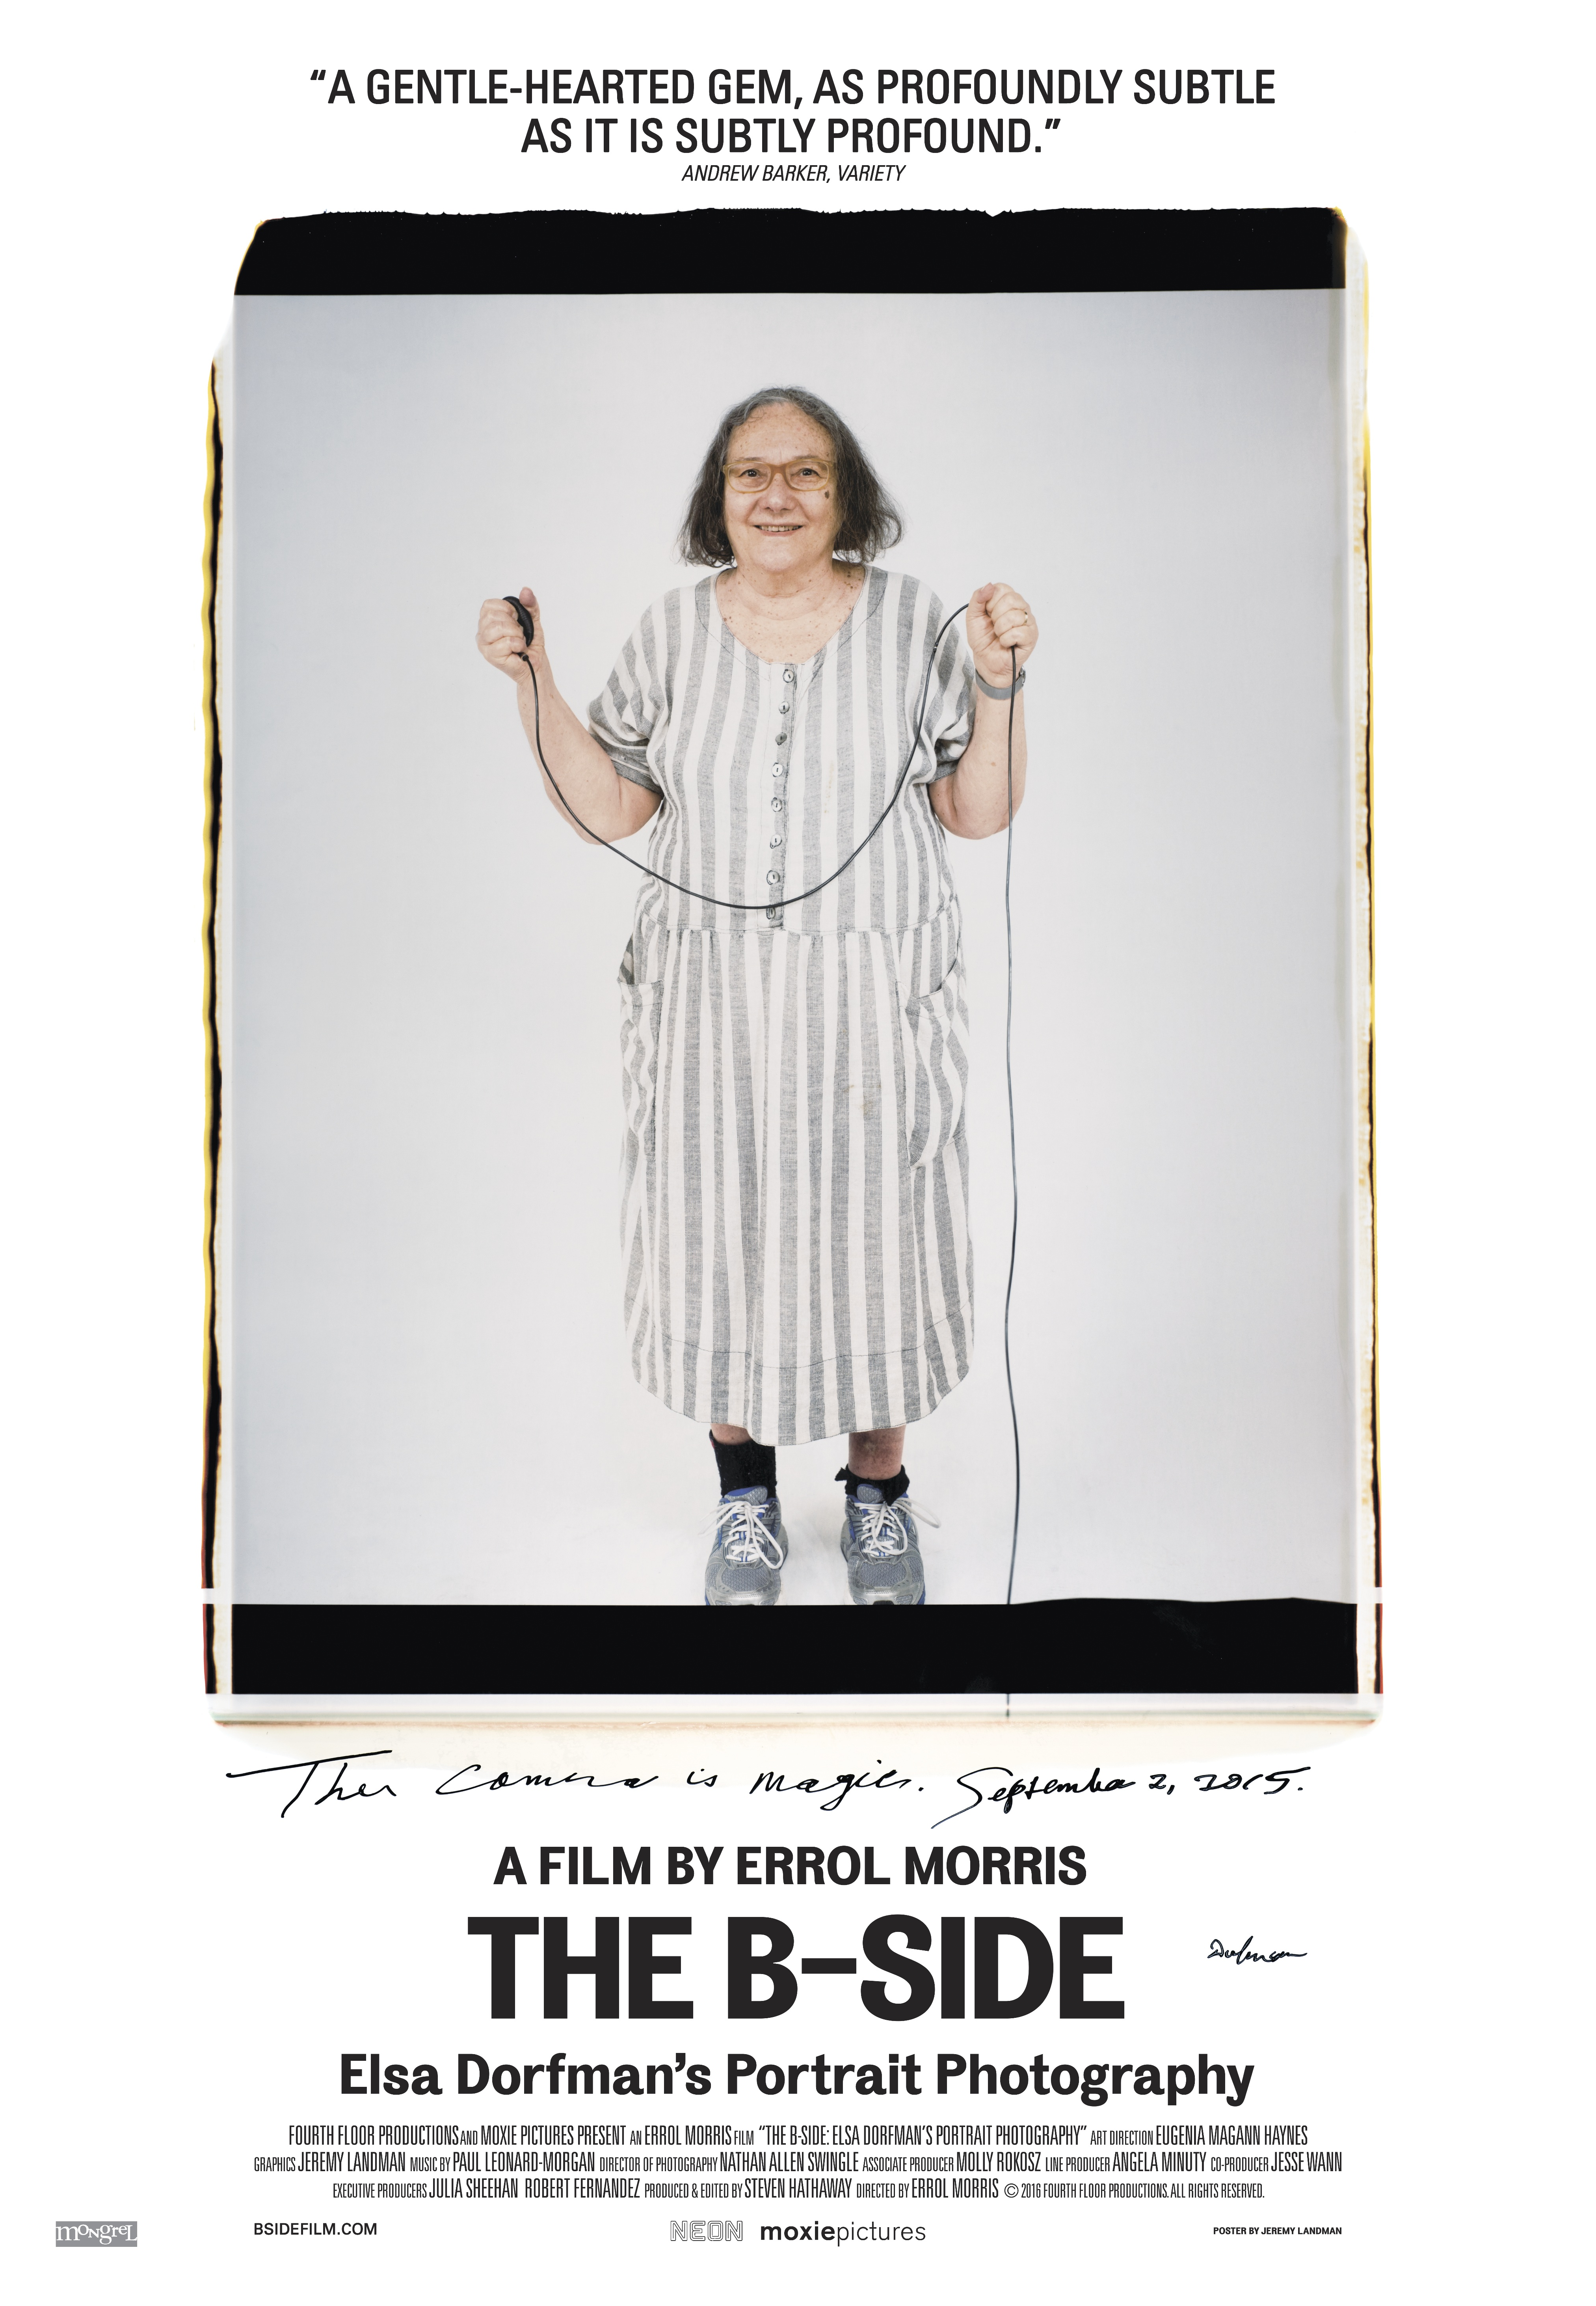 B-Side, The: Elsa Dorfman's Portrait Photography